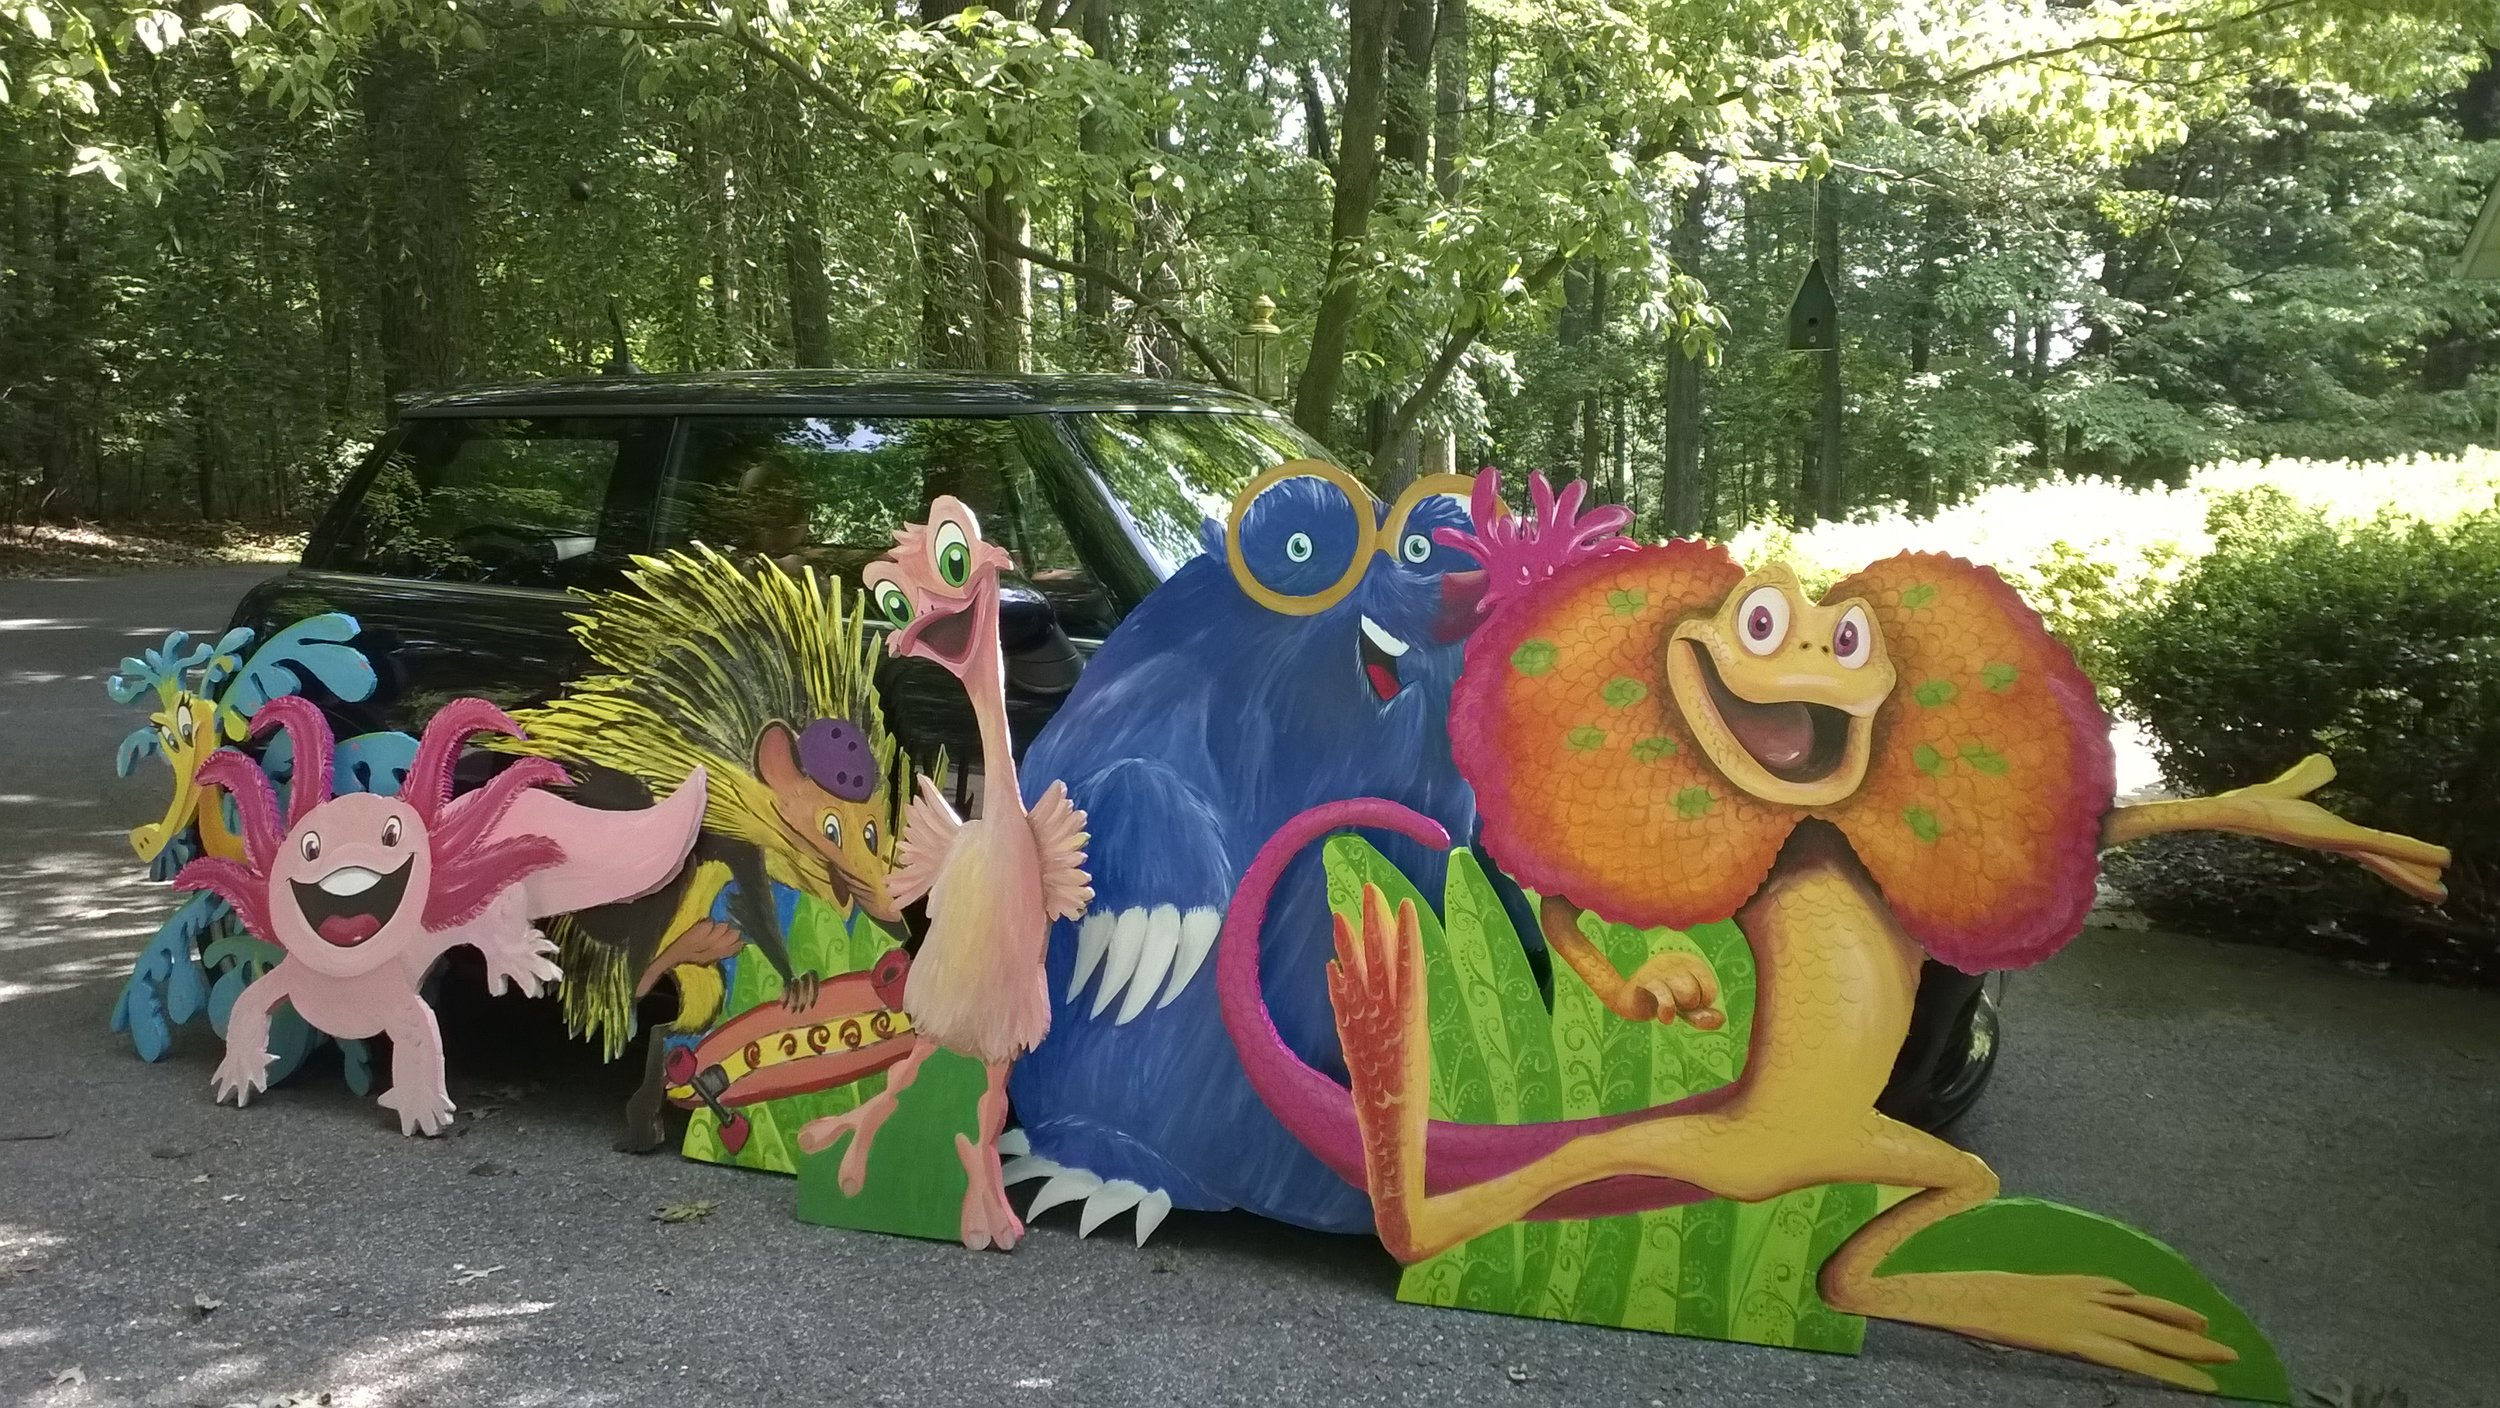 Yes, all these VBS Weird Animals actually fit in a Mini Cooper.